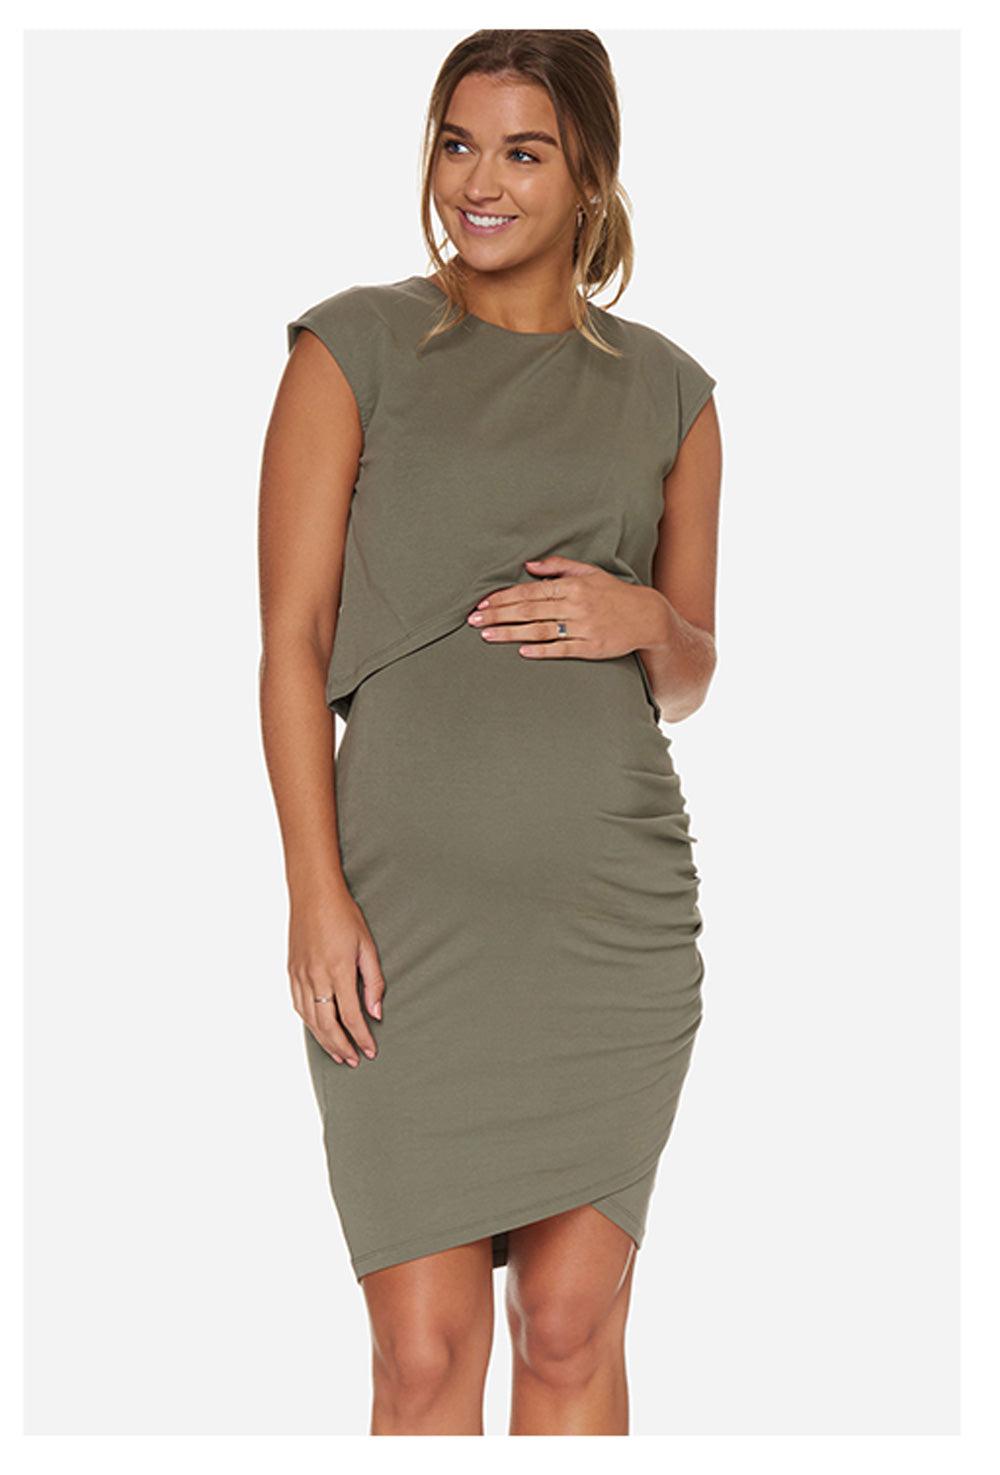 Khaki Maternity Dress